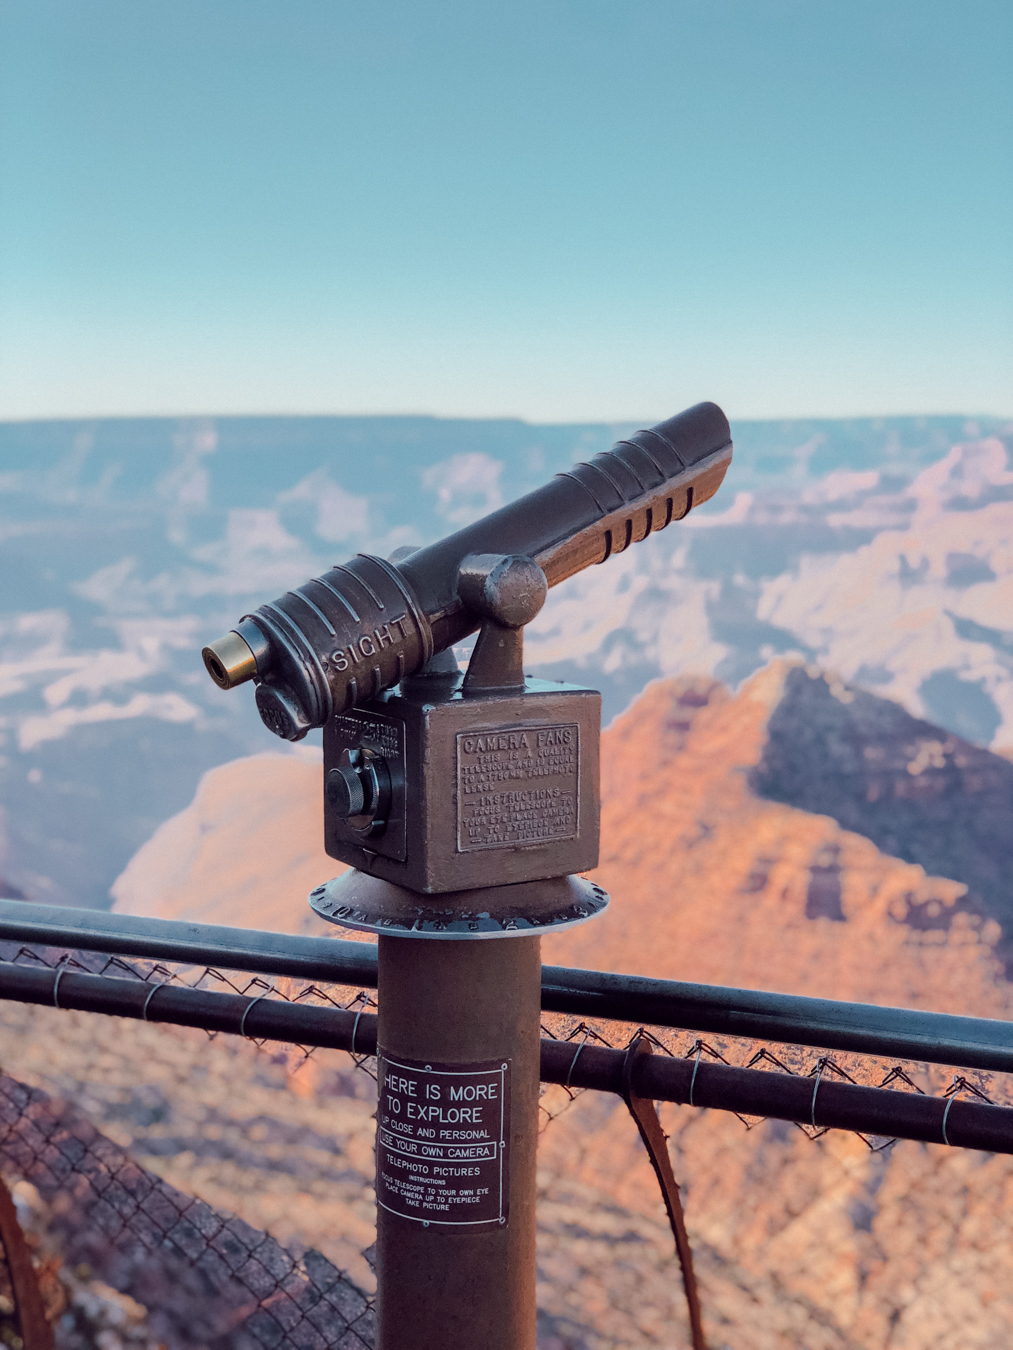 Blog-Mode-And-the-City-Lifestyle-voyage-roadtrip-USA-cote-ouest-grand-canyon-monument-valley-17